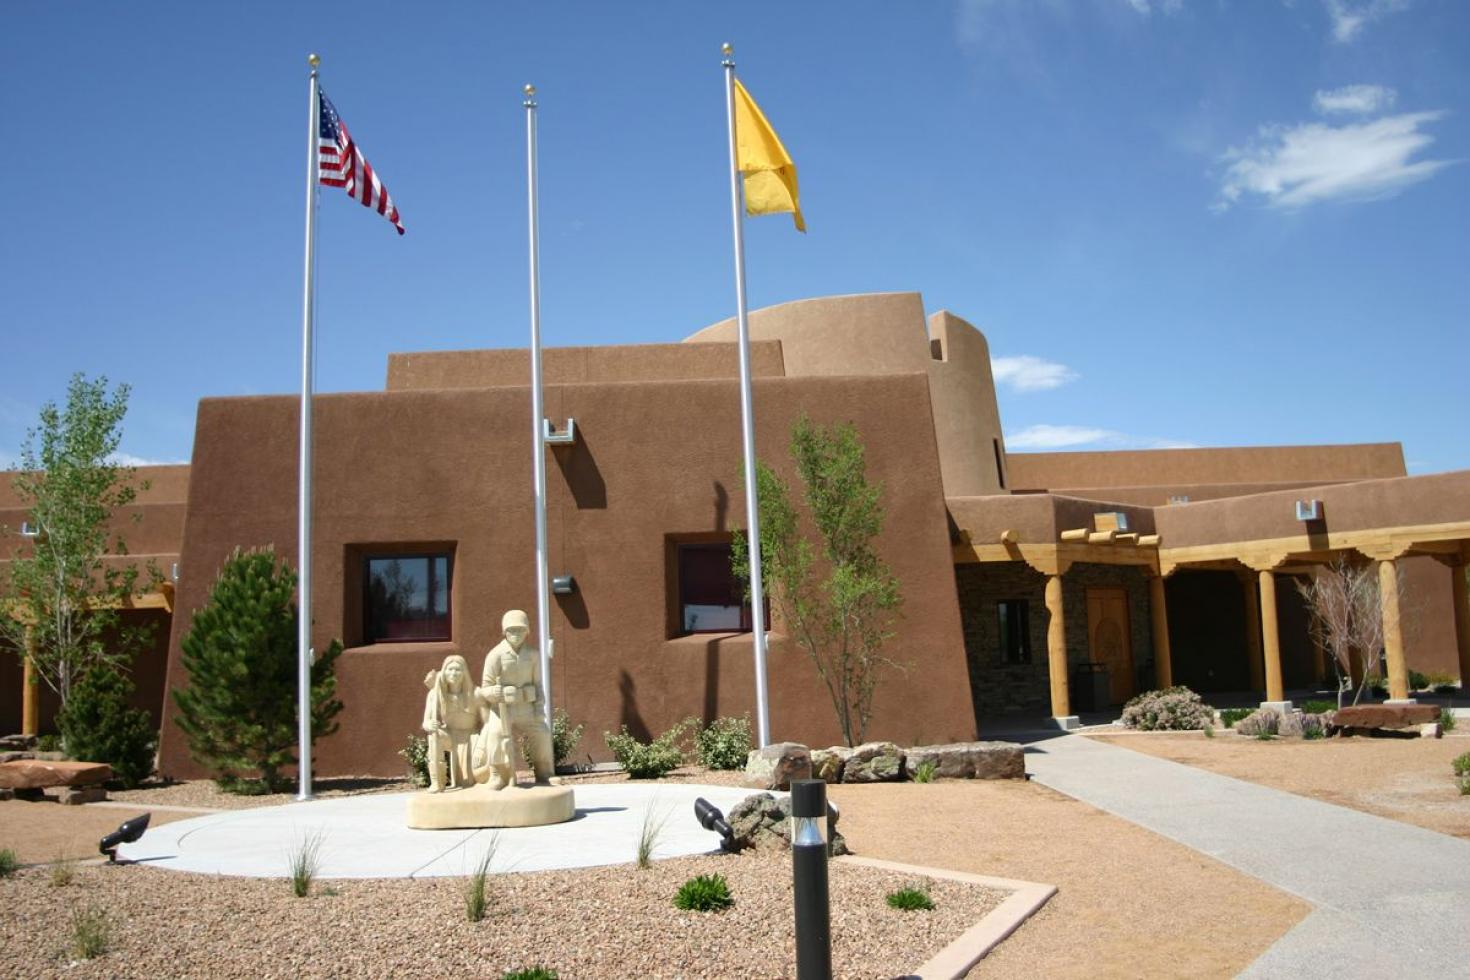 New Mexico tribes proposed casino in downtown Albuquerque